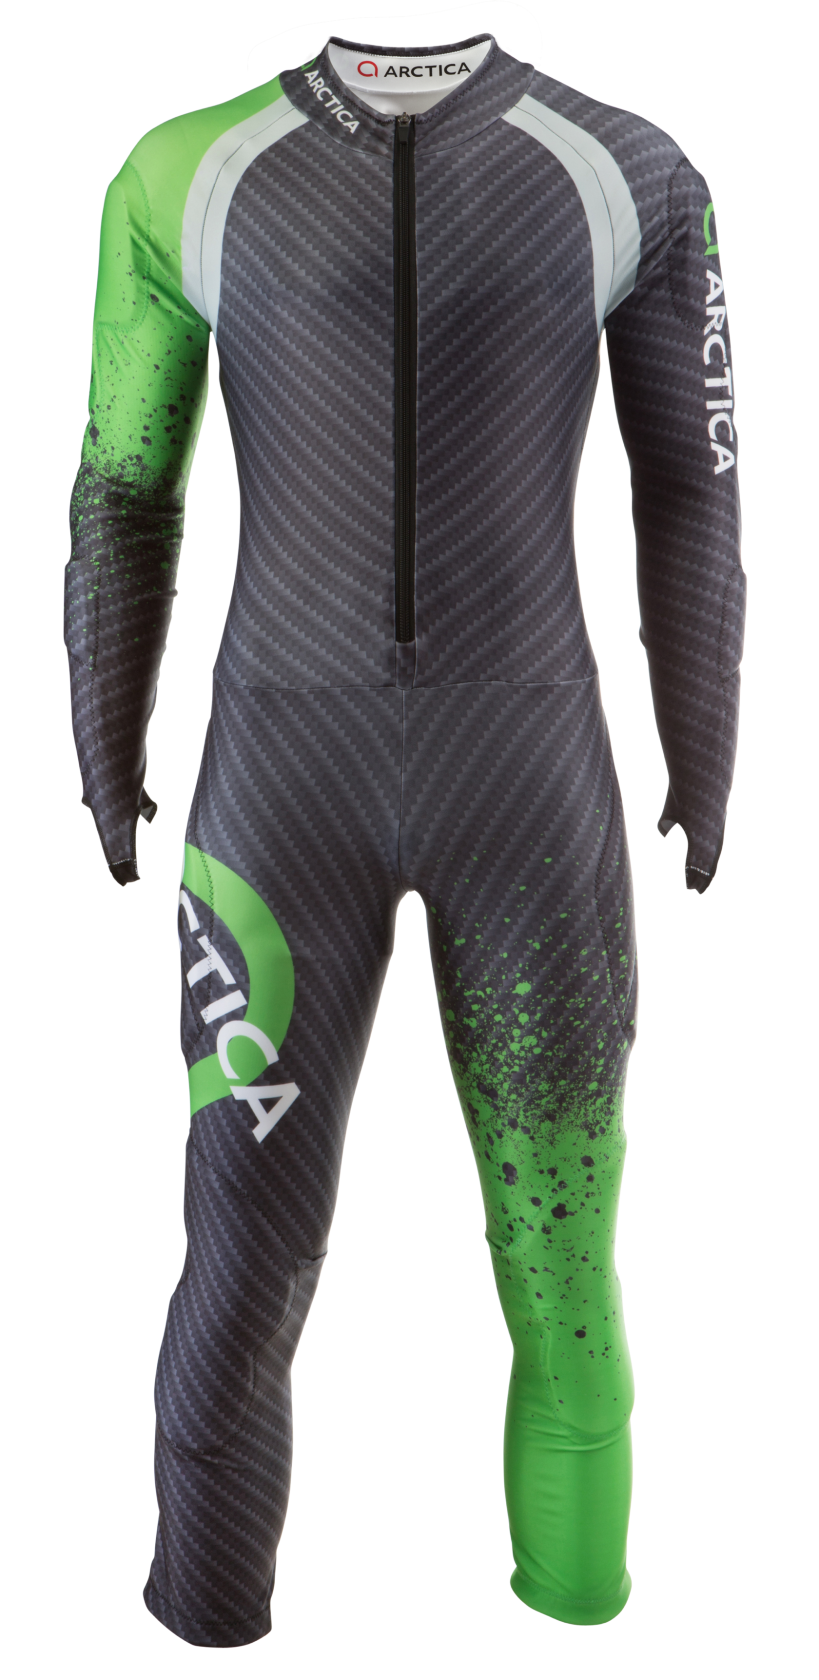 Arctica Cup GS Speed Suit Green. High quality. Good looking. FIS approved. $300 adult/$250 youth.